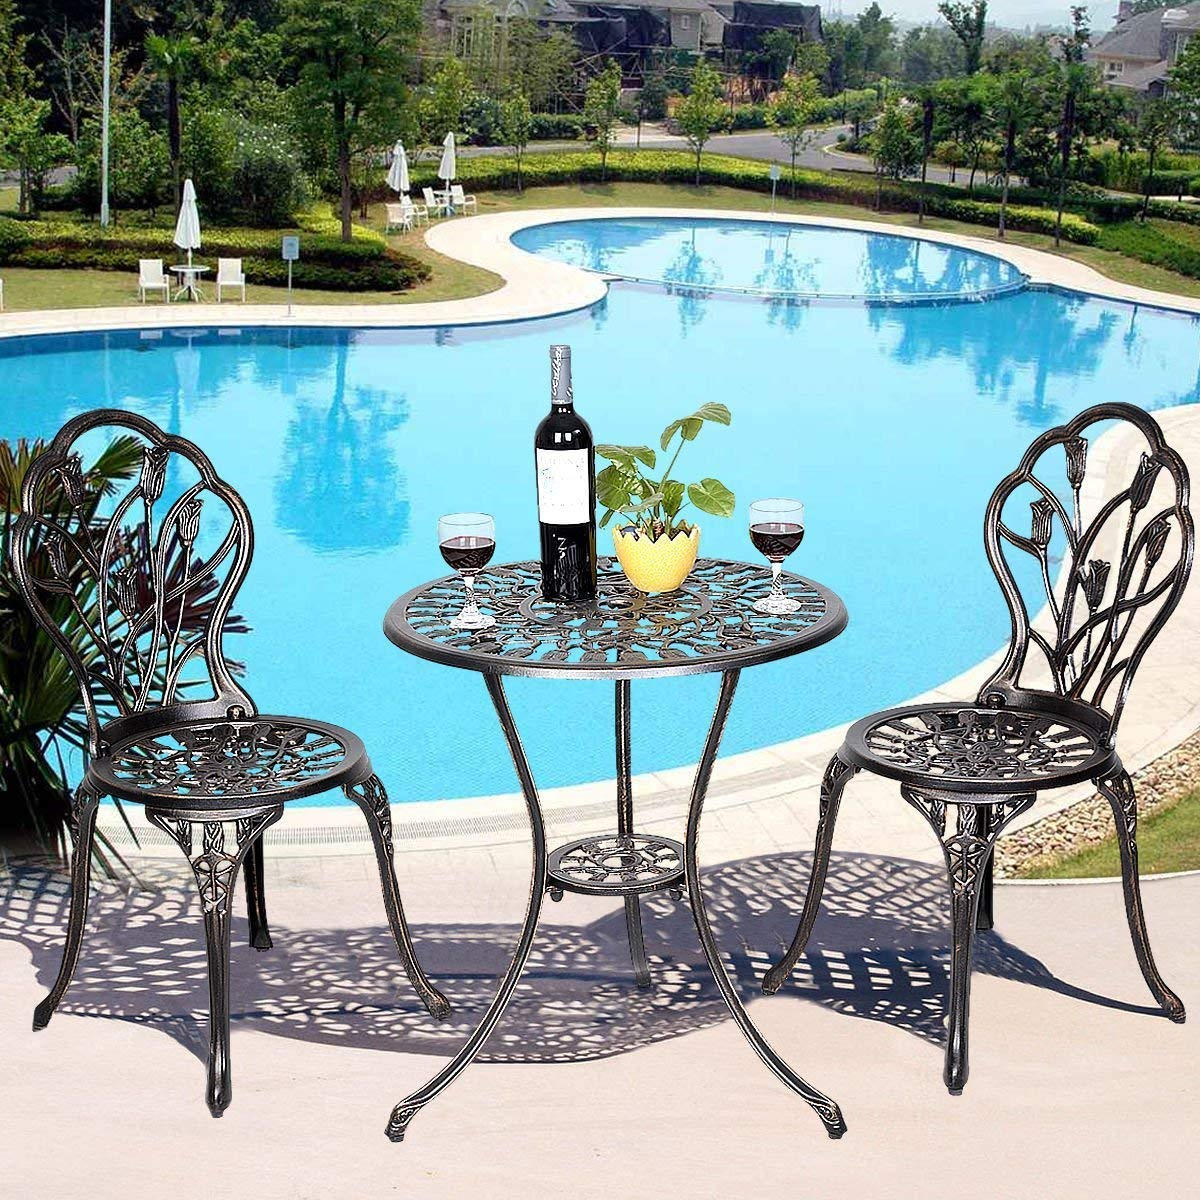 Casart 3 Pcs Bistro Set Cast Tulip Design Antique Outdoor Patio Furniture Weather Resistant Garden Round Table and Chairs Set w Umbrella Hole Tulip Design